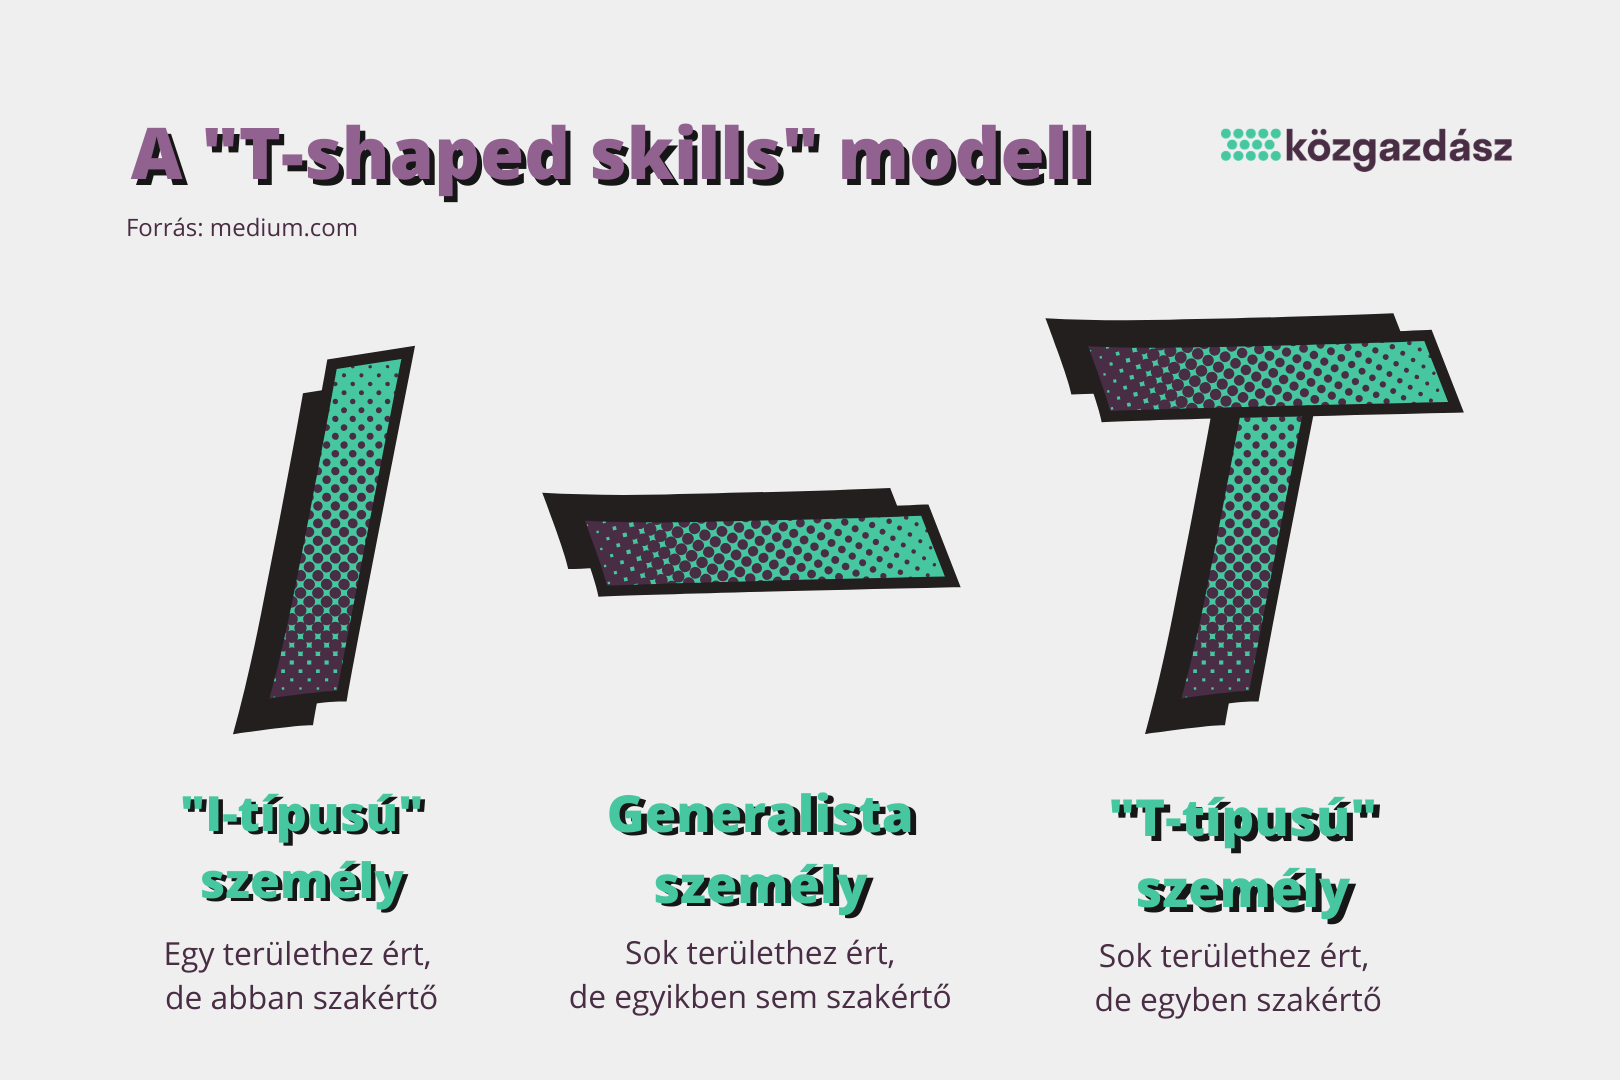 a_t-shaped_skills_modell_2_0.png